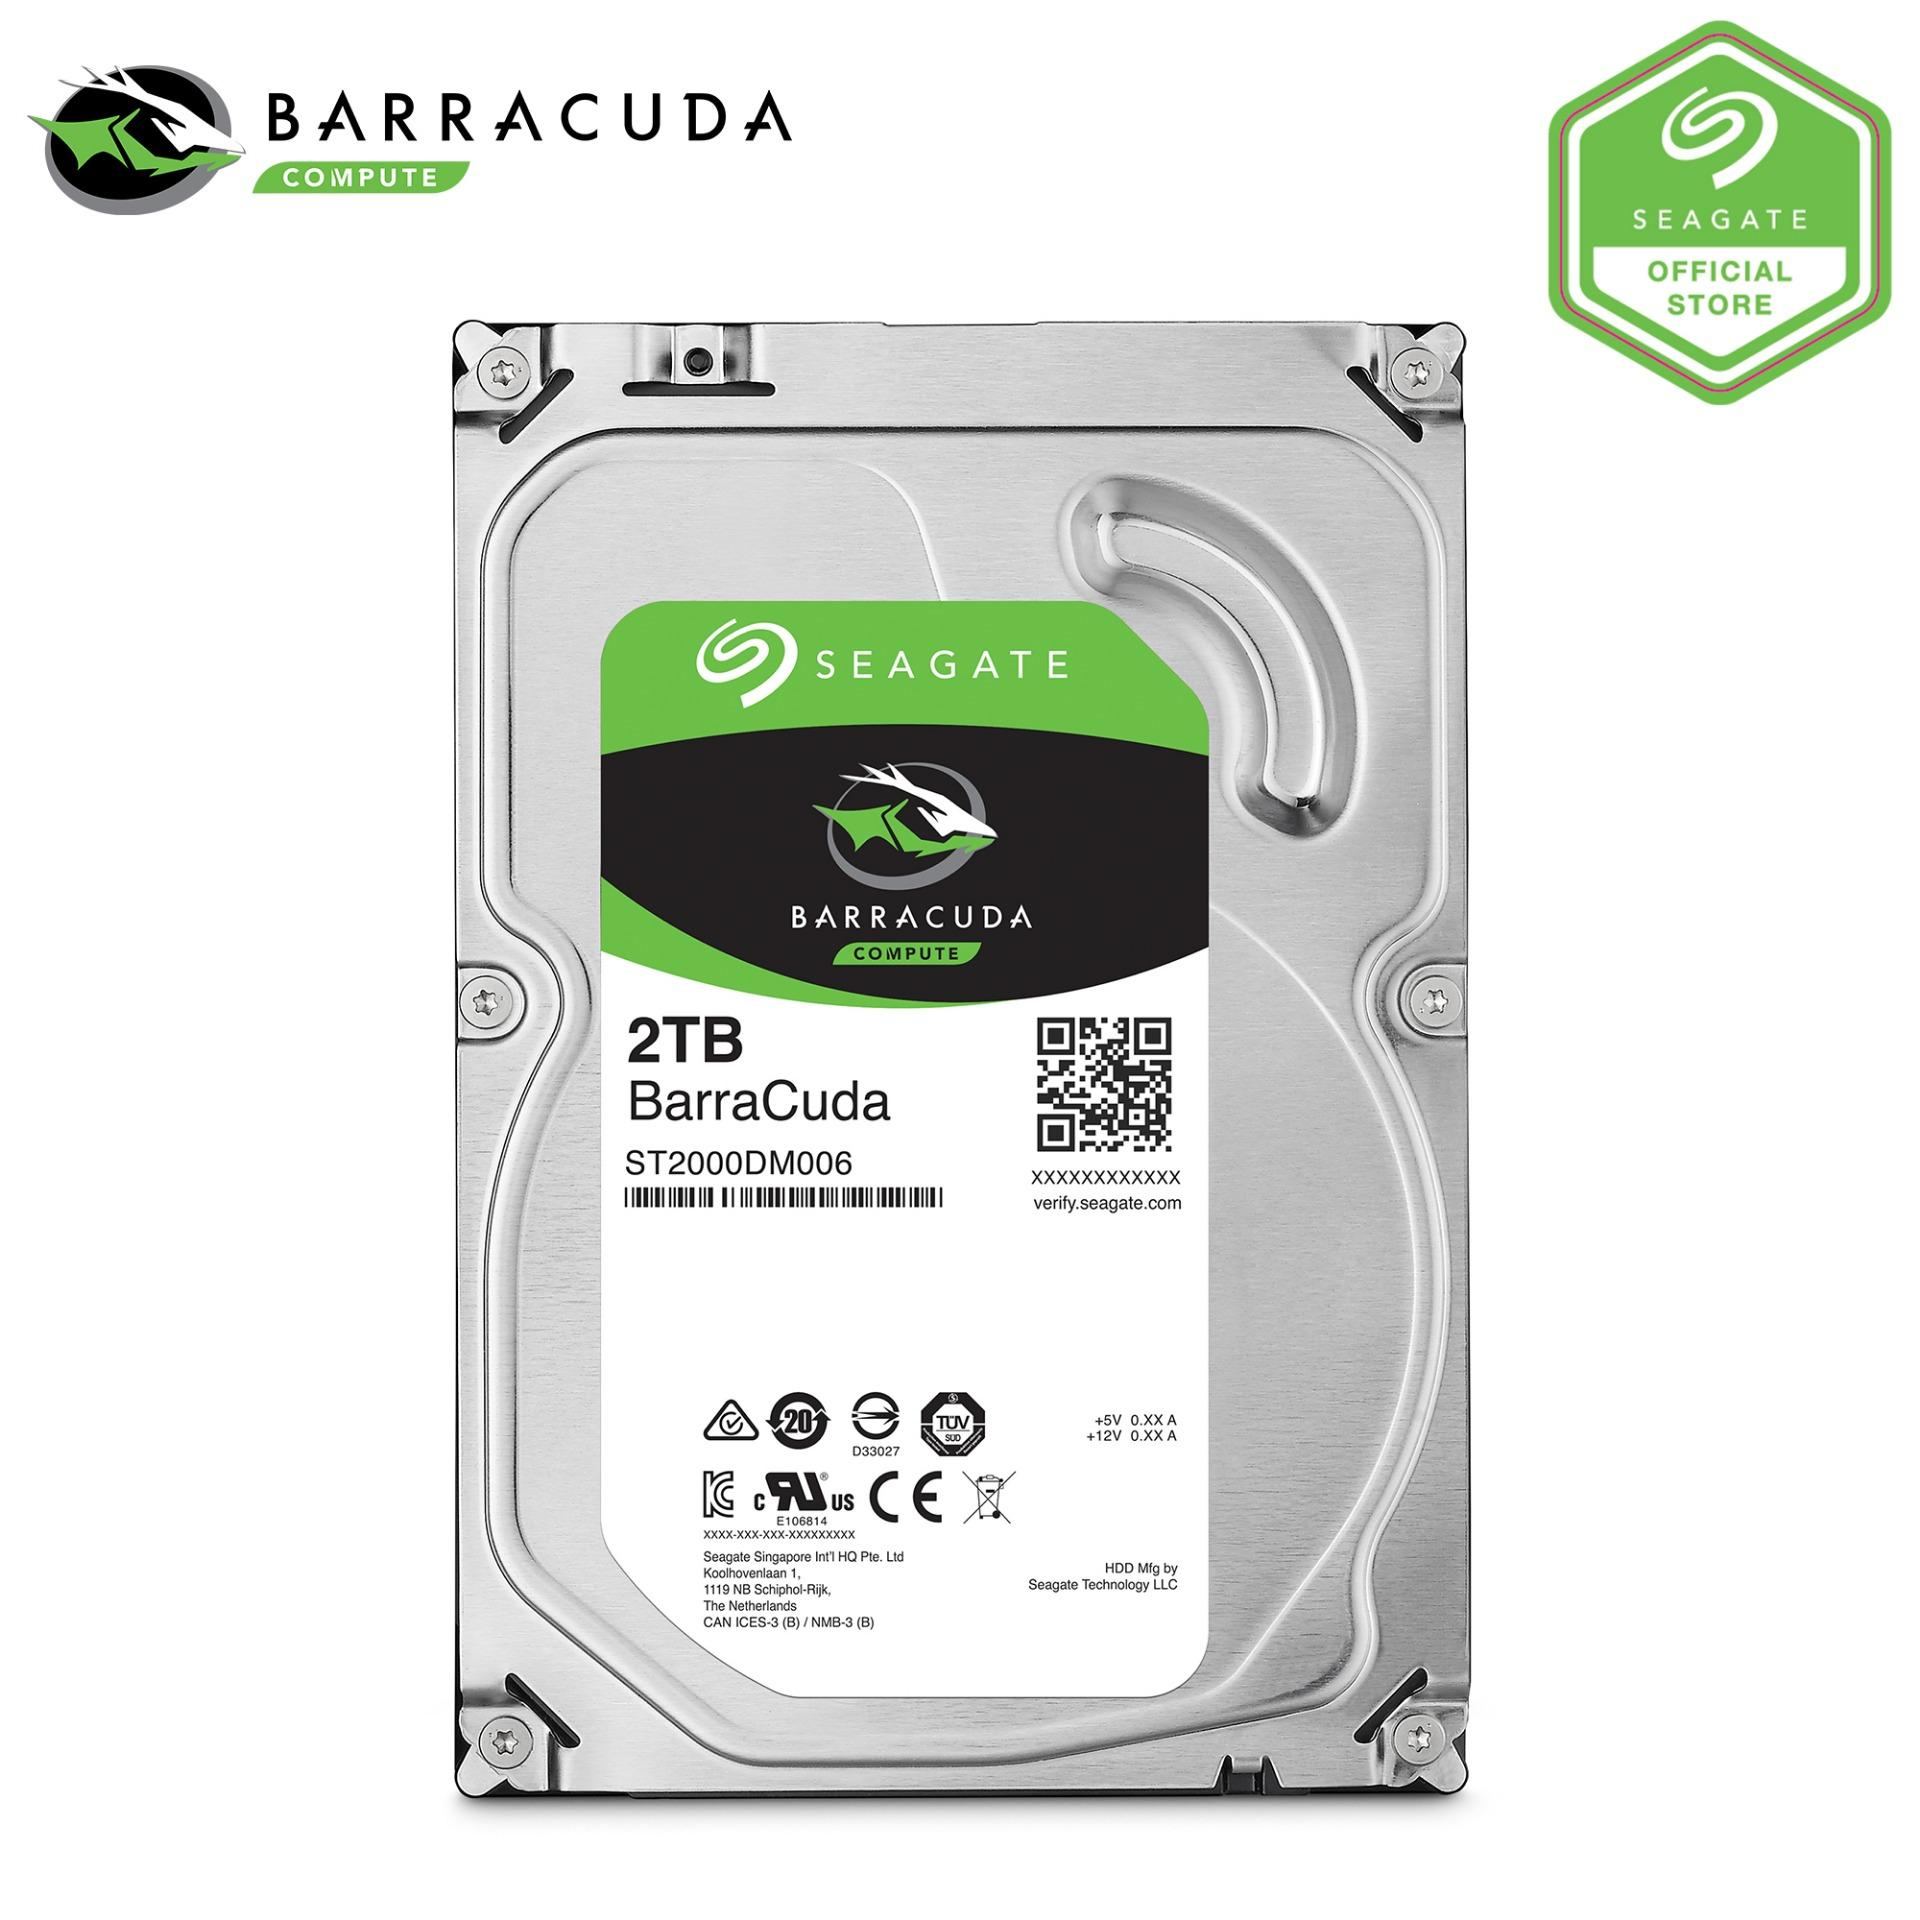 Buy Seagate Barracuda 3 5 2Tb Desktop Hard Disk On Singapore